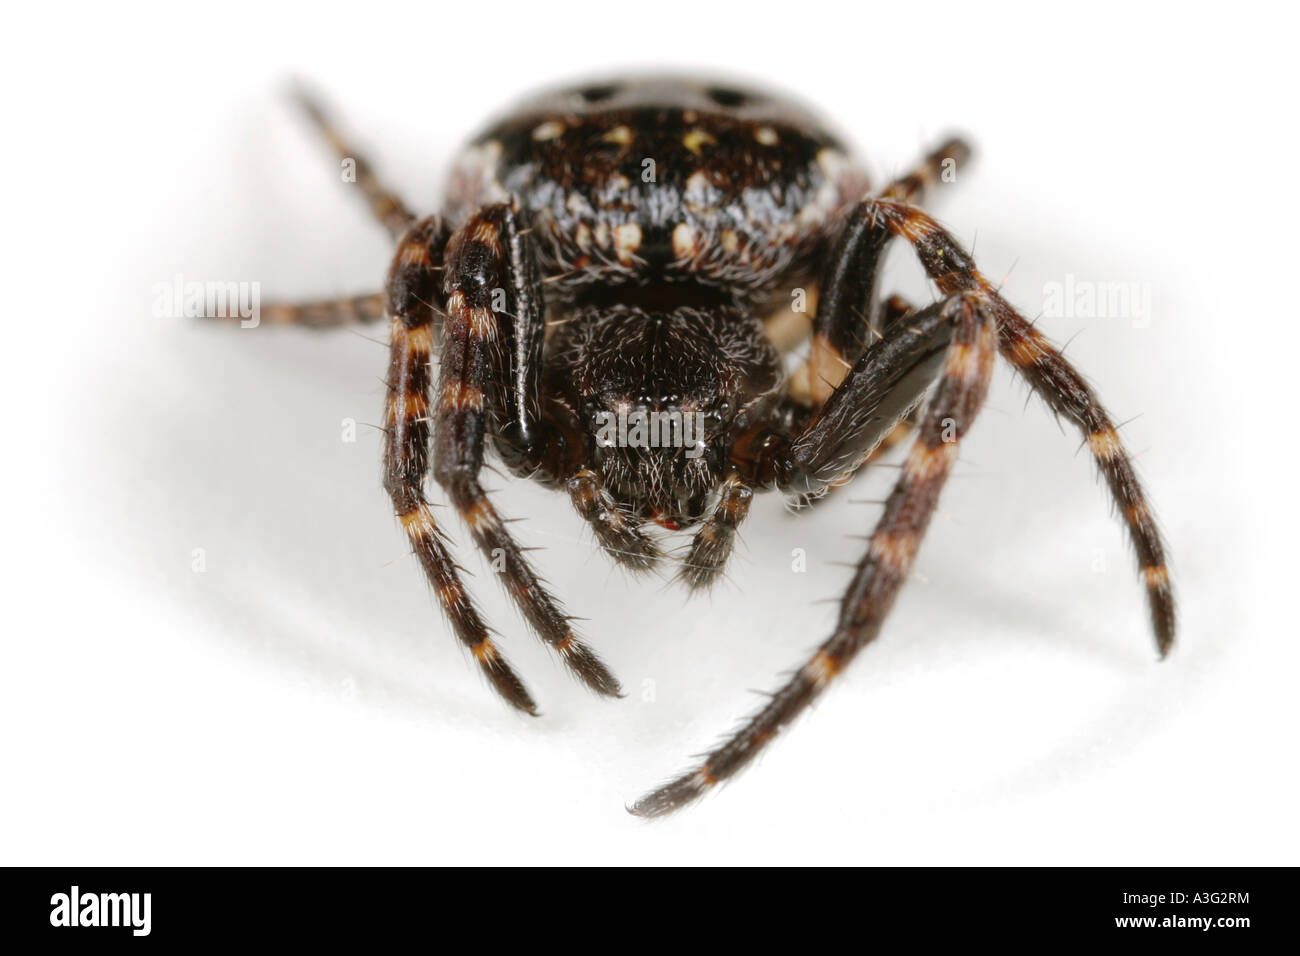 A Nuctenea umbratica spider, Araneidae family, on white background. Head on view. - Stock Image